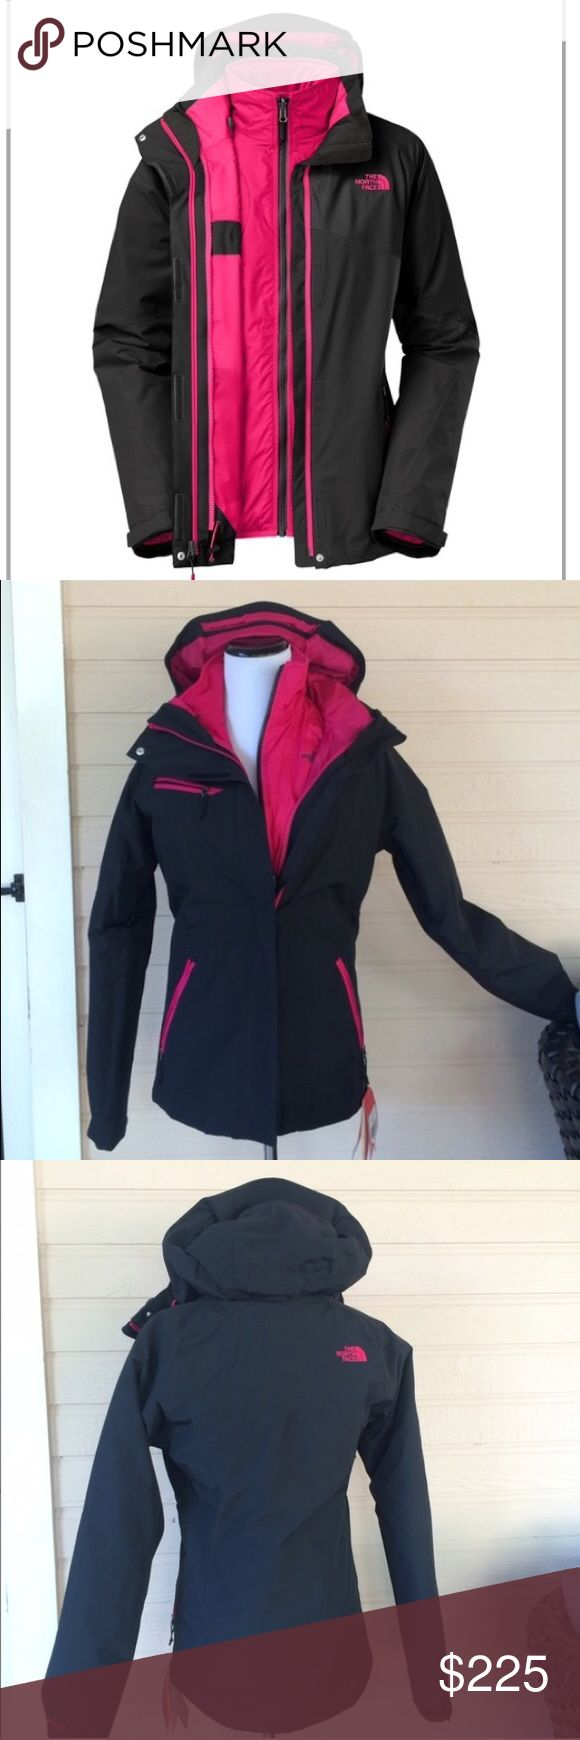 North face Cinnabar Triclimate jacket NWT, Northface 3 in 1 jacket🔹HyVent 2L waterproof 🔹zip in Northface Heatseeker insulated liner🔹fully adjustable removable hood🔹media compatibility 🔹secure zip chest pocket🔹center front zip w/storm flaps🔹pit zip vents, hem cinch cord🔹360• reflectivity 🚫NO Trades❗️ North Face Jackets & Coats